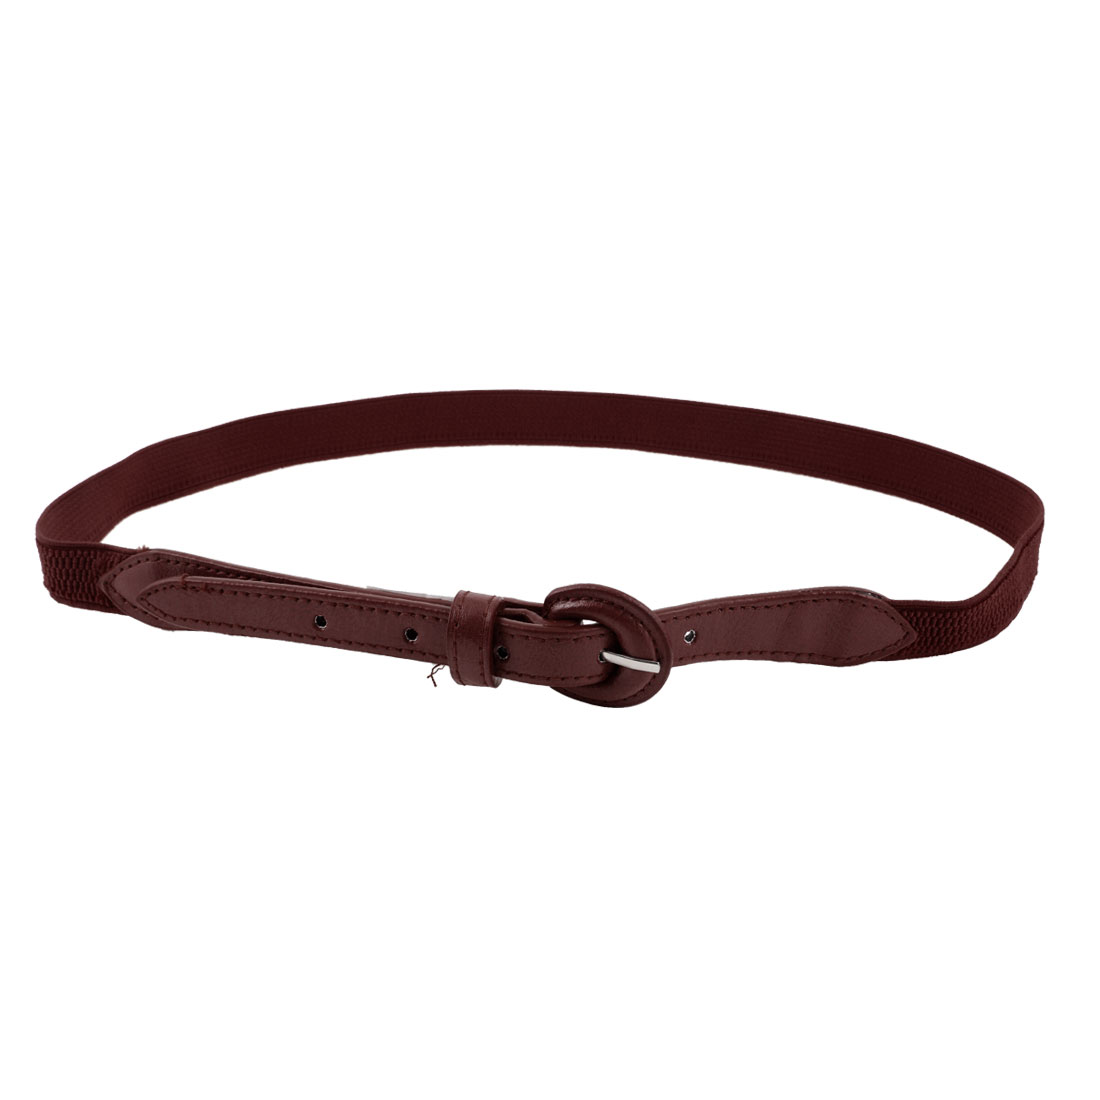 "Ladies Single Prong Buckle 0.8"" Wide Burgundy Faux Leather Cinch Waist Belt"